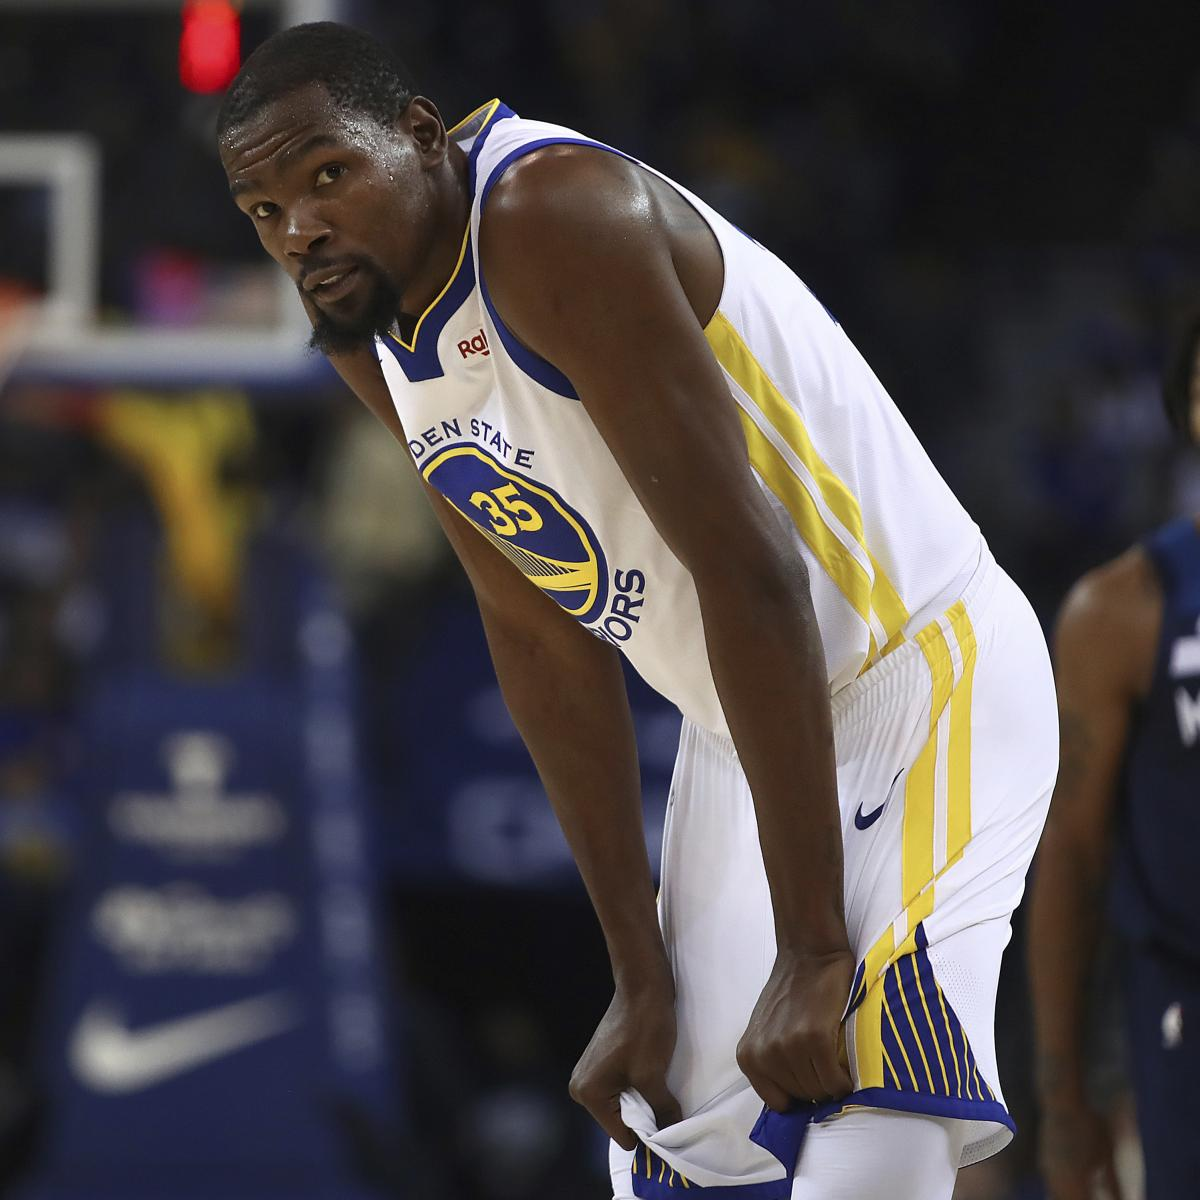 Warriors Come Out To Play Bleacher Report: Kevin Durant Rumors: Lakers, Knicks, Clippers To Target